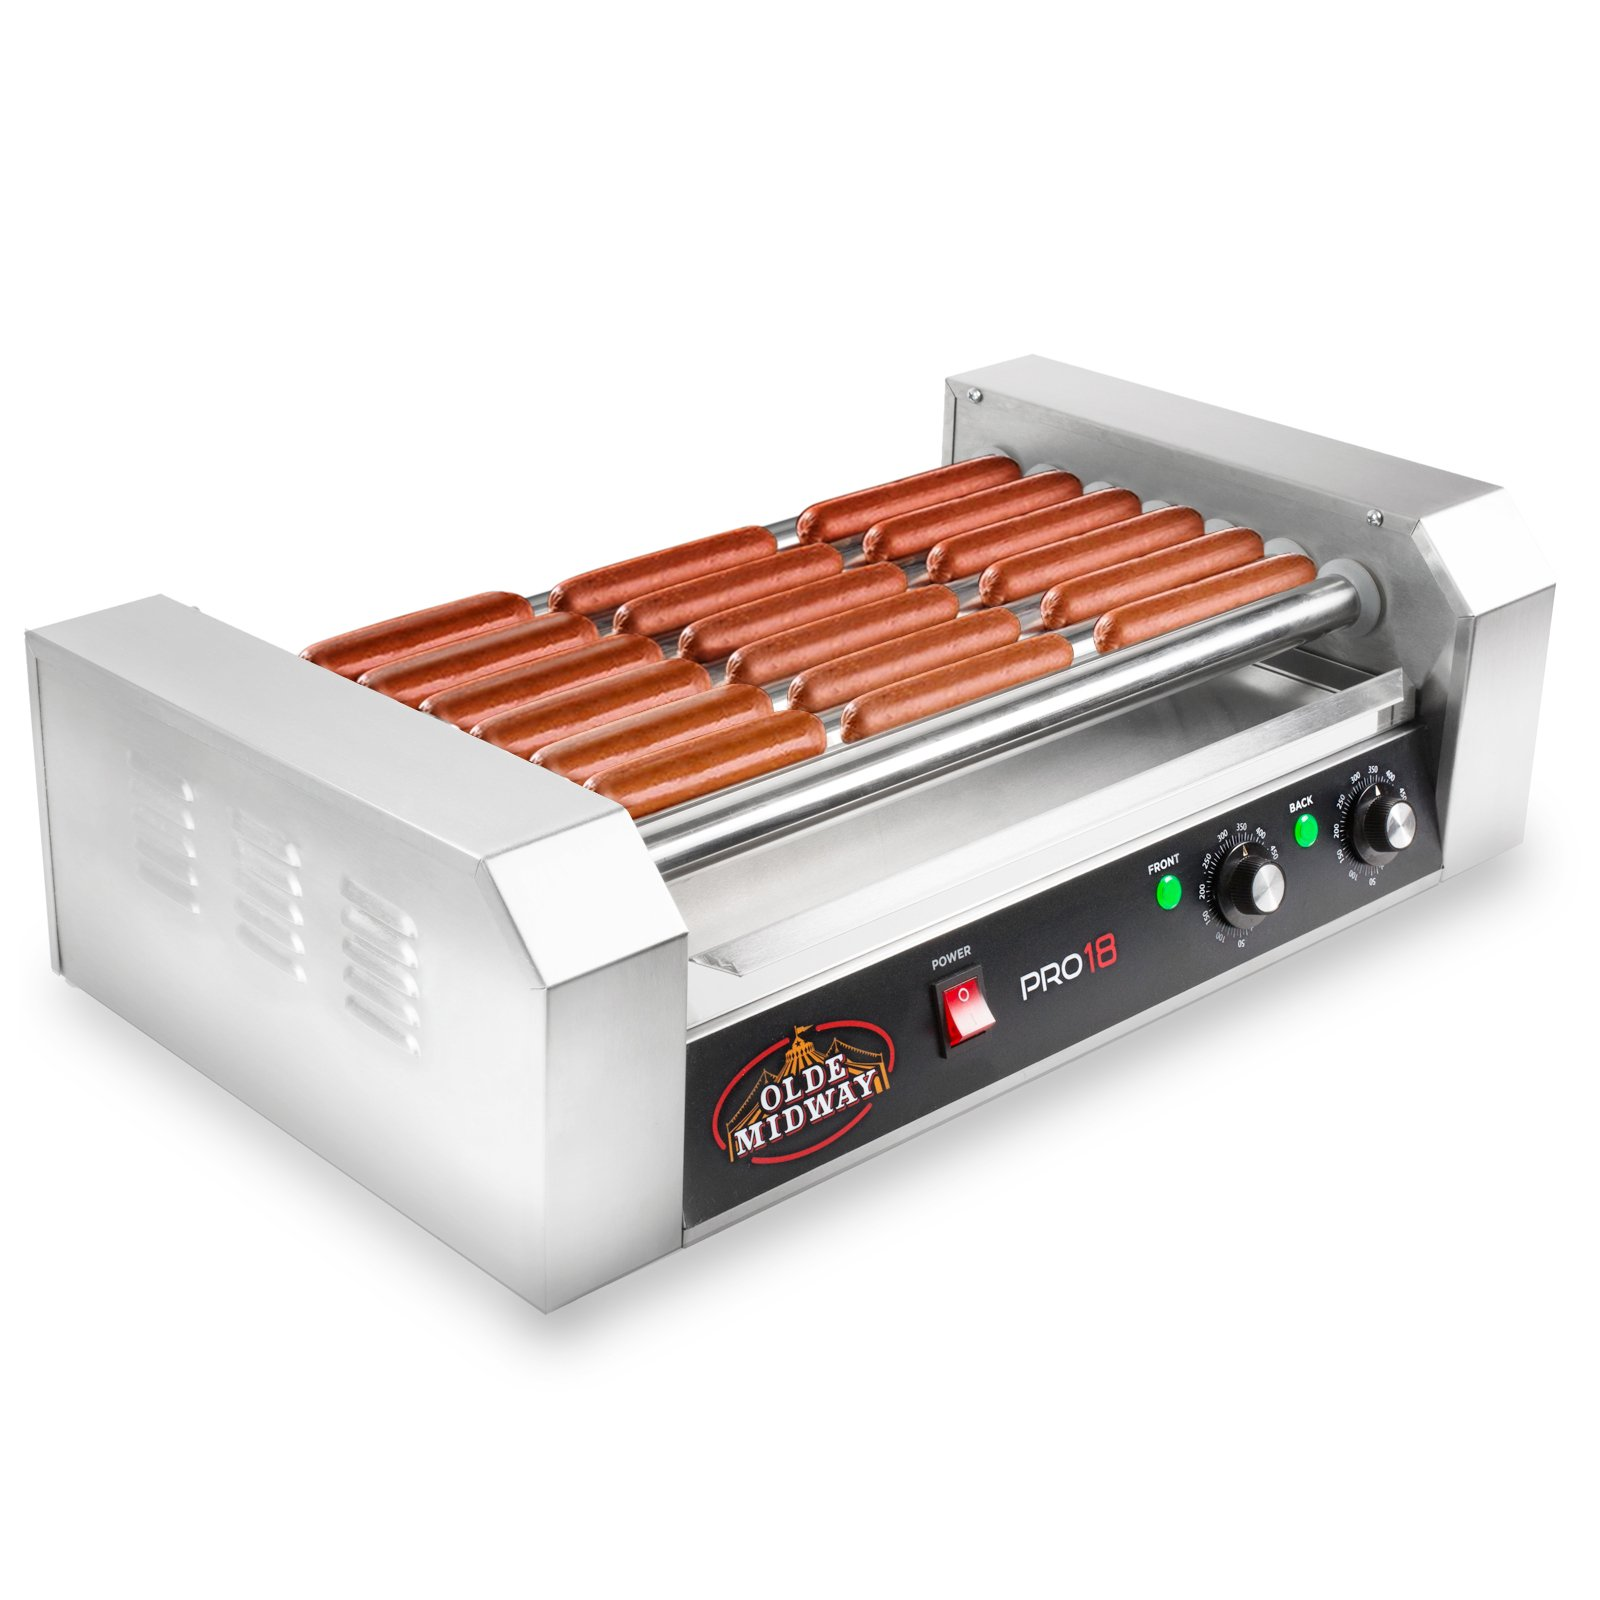 Olde Midway Electric 18 Hot Dog 7 Roller Grill Cooker Machine 900-Watt - Commercial Grade by Olde Midway